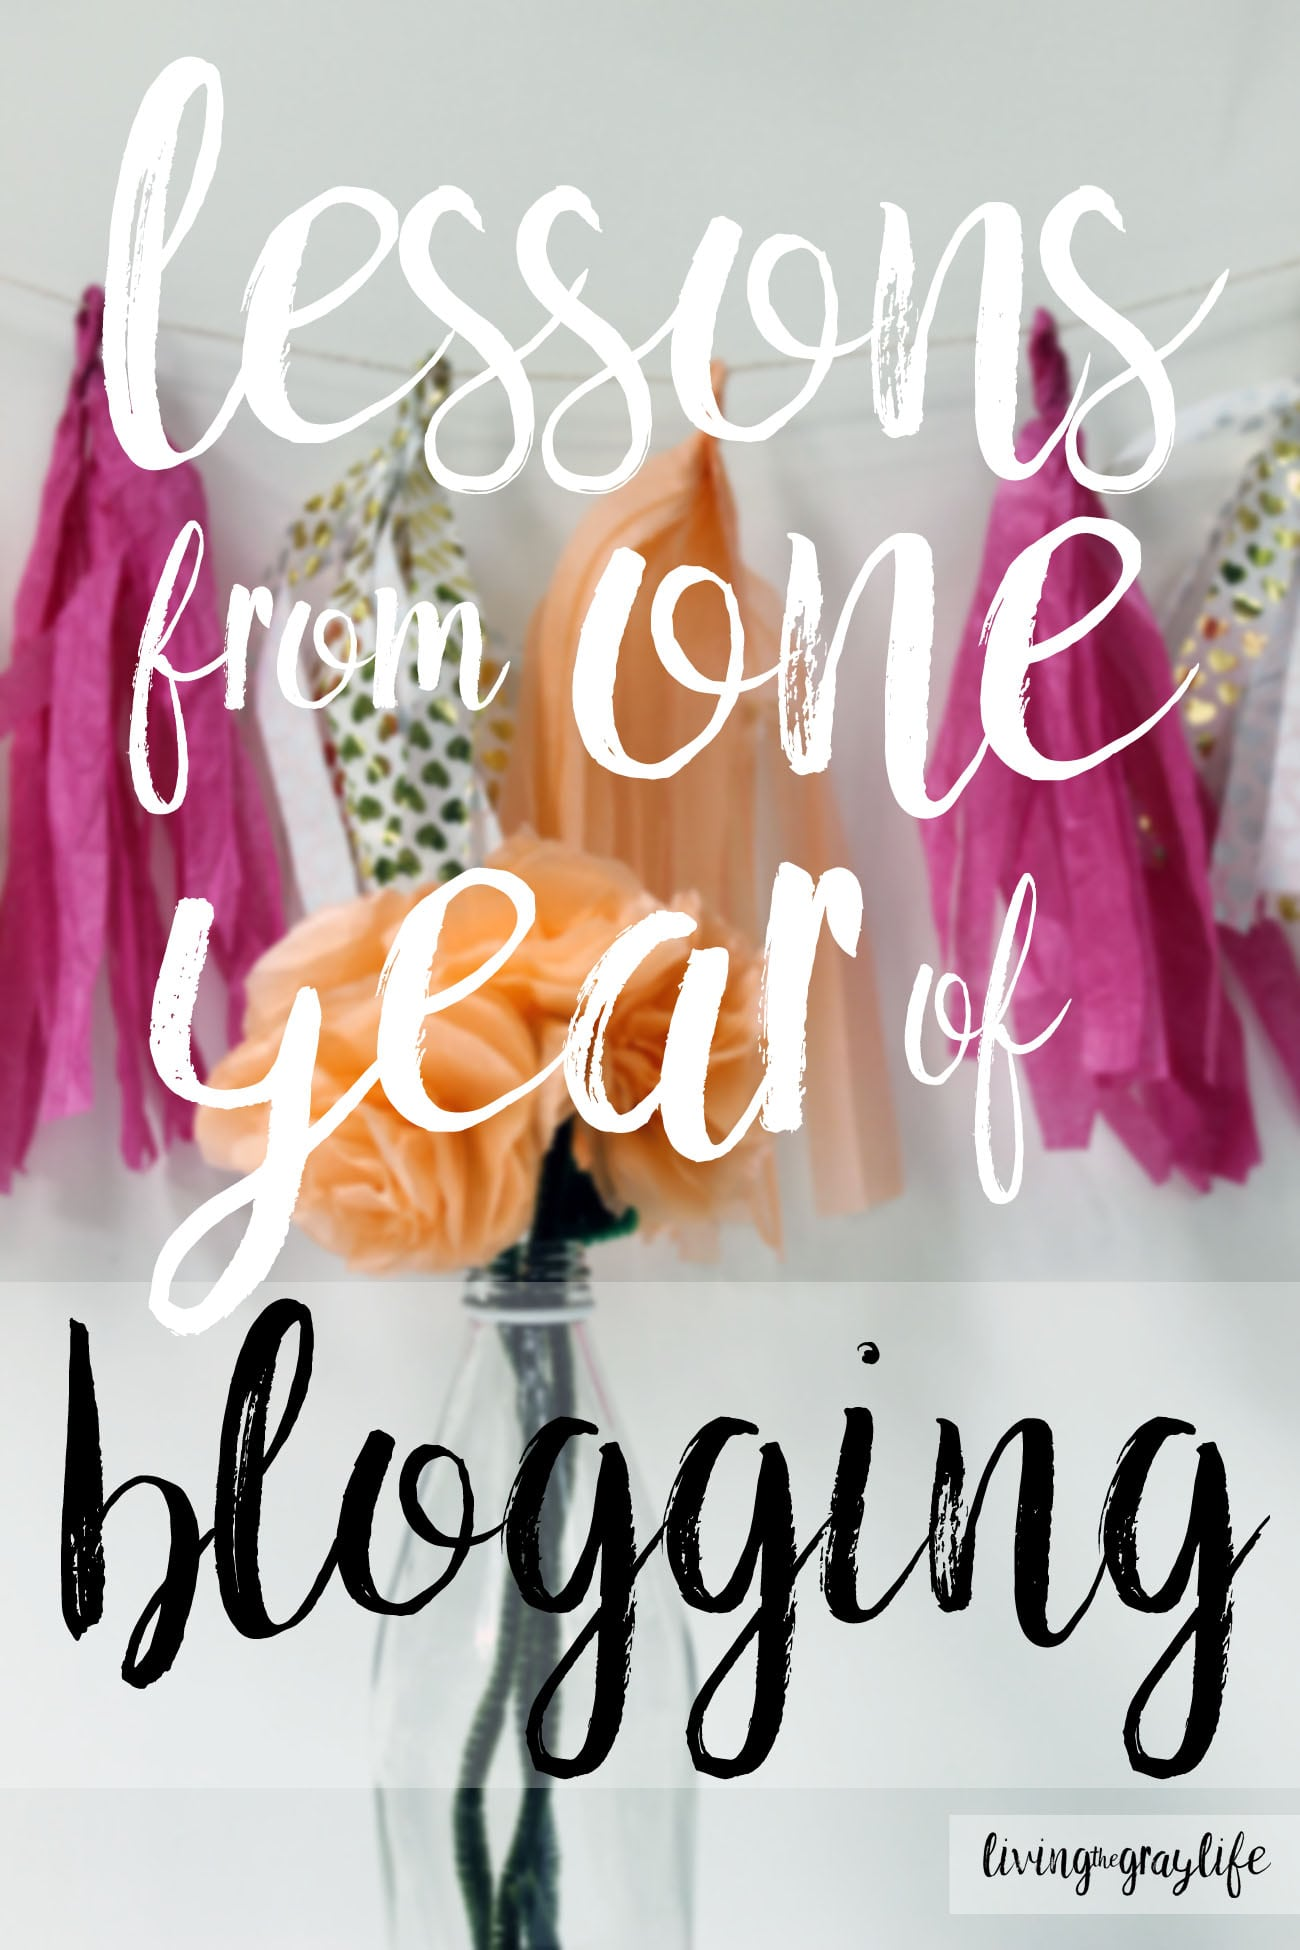 Lessons learned after one full year of blogging lessons from one year blogging